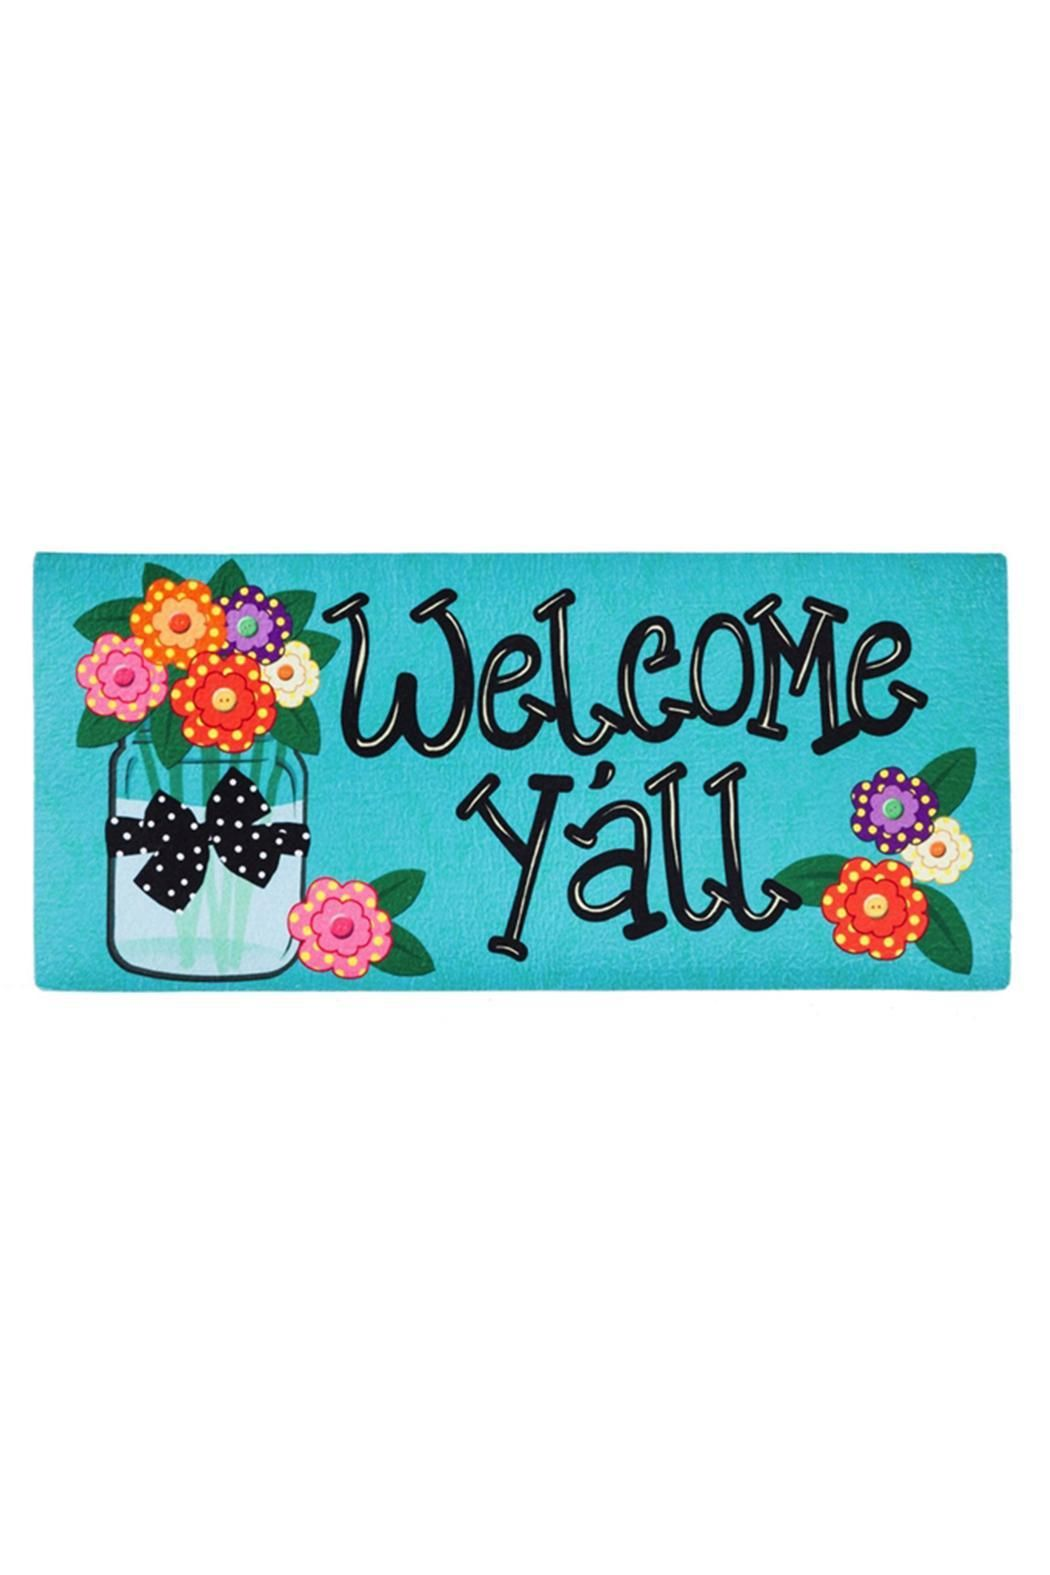 Sassafras Welcome Y'all Flowers Mat.  Size: 10 x 22 x 0.2 Flower Welcome Mat by Evergreen Enterprises. Home & Gifts - Home Decor - Outdoor Missouri